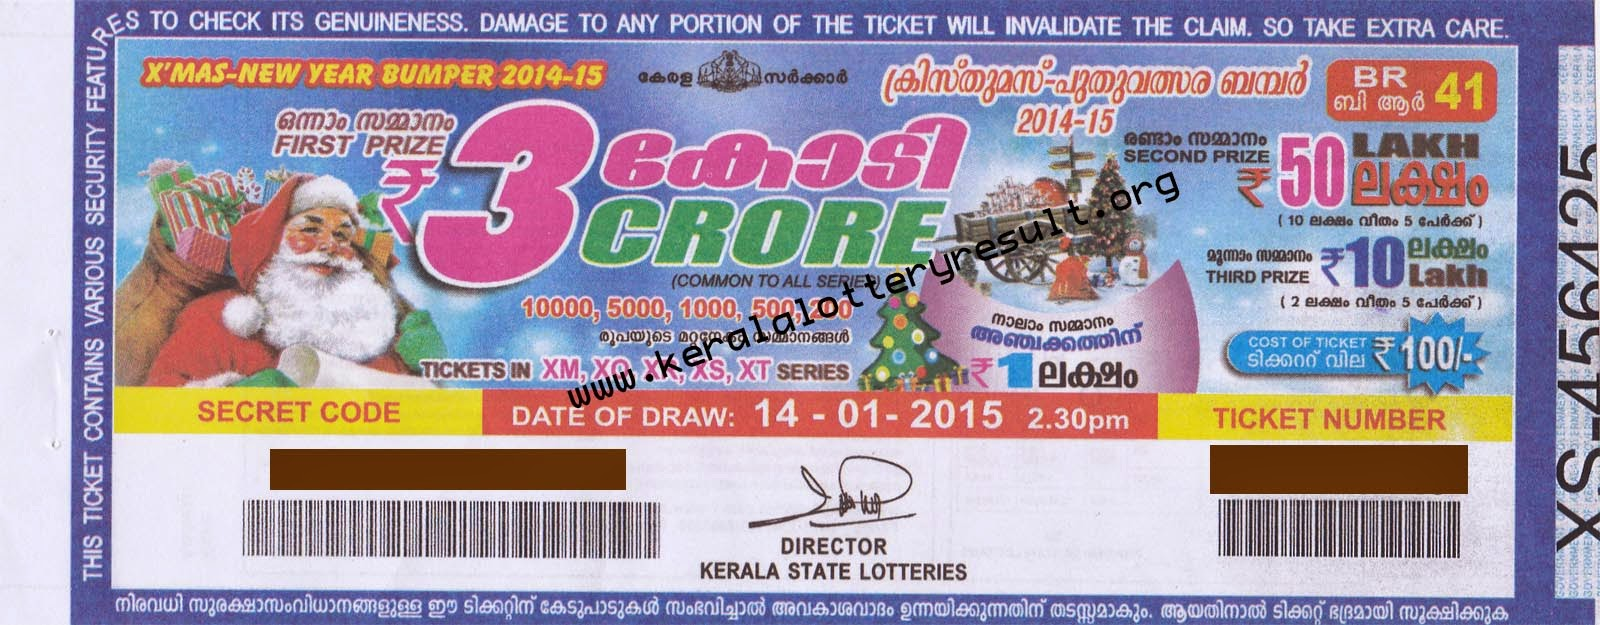 Kerala State Christmas New Year Bumper Lottery 2014-2015